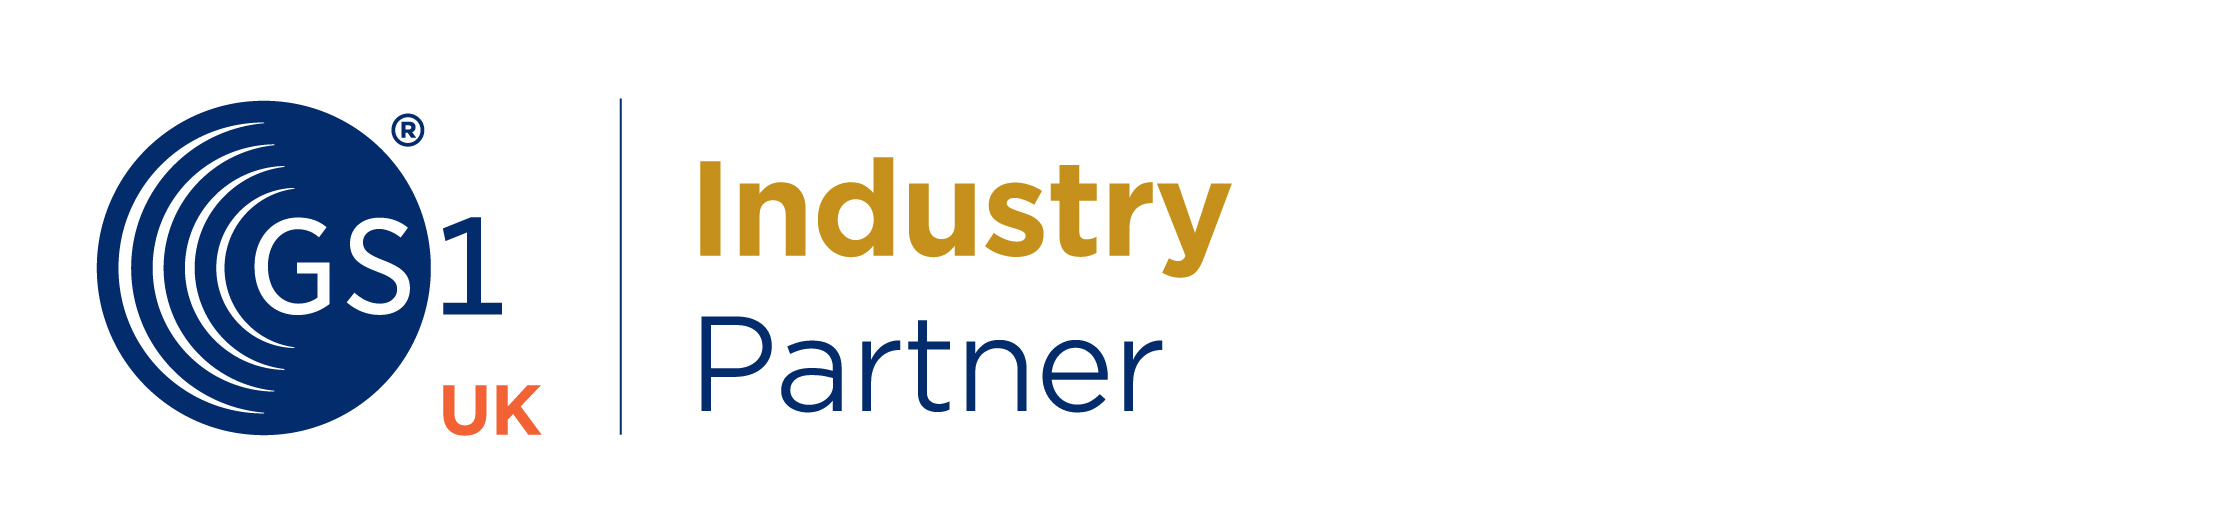 GS1 UK Industry Partner